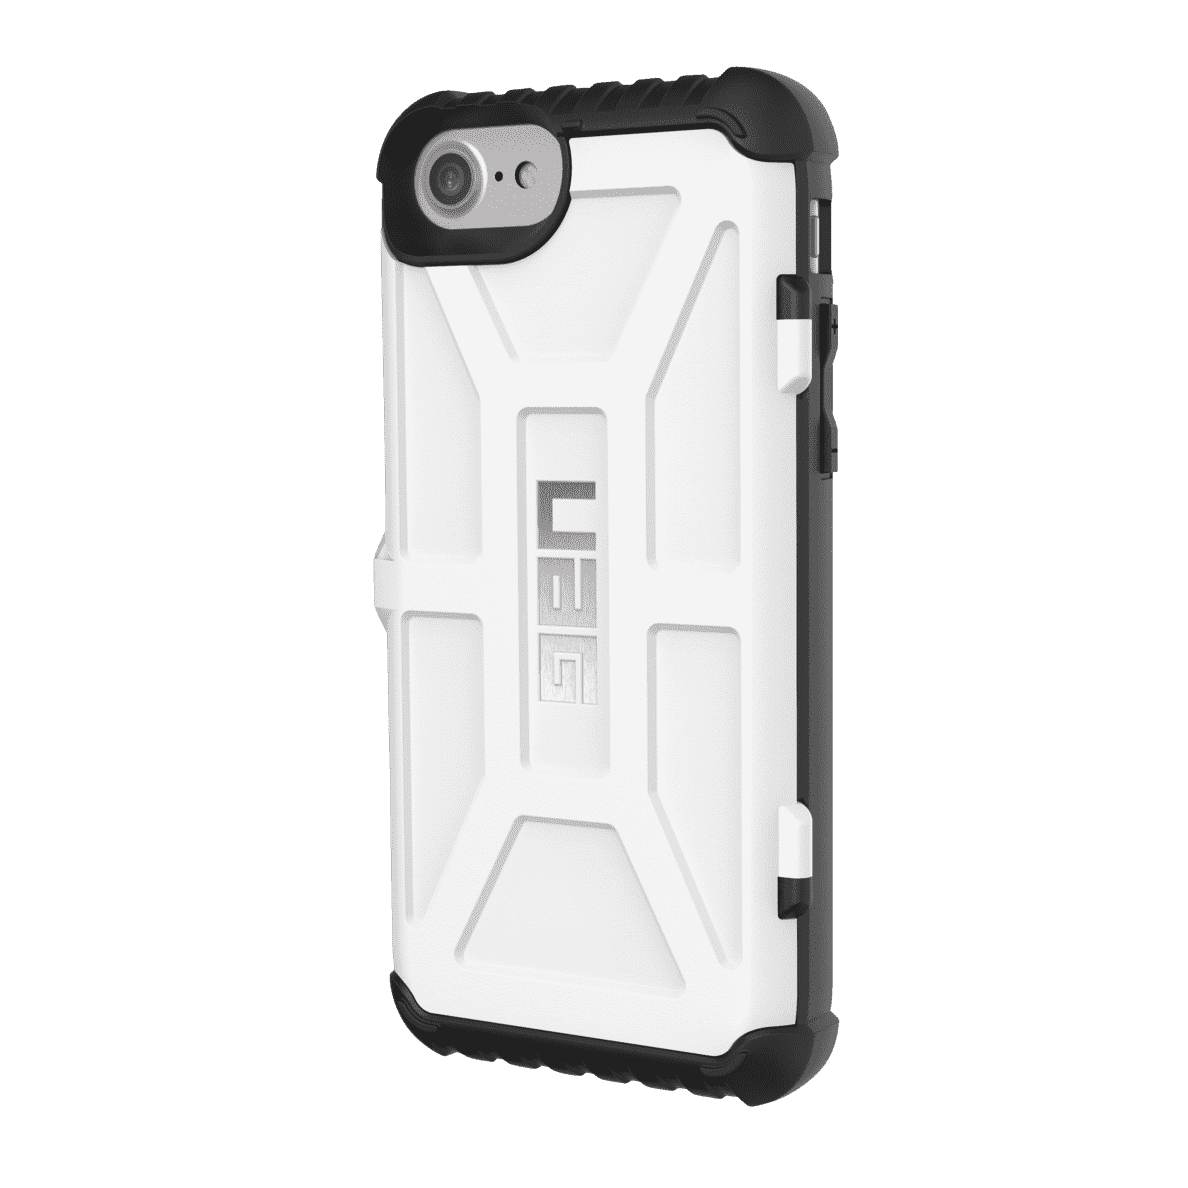 URBAN ARMOR GEAR Trooper Card Handyhülle, Weiß/Schwarz, passend für Apple iPhone 6, 6s, 7